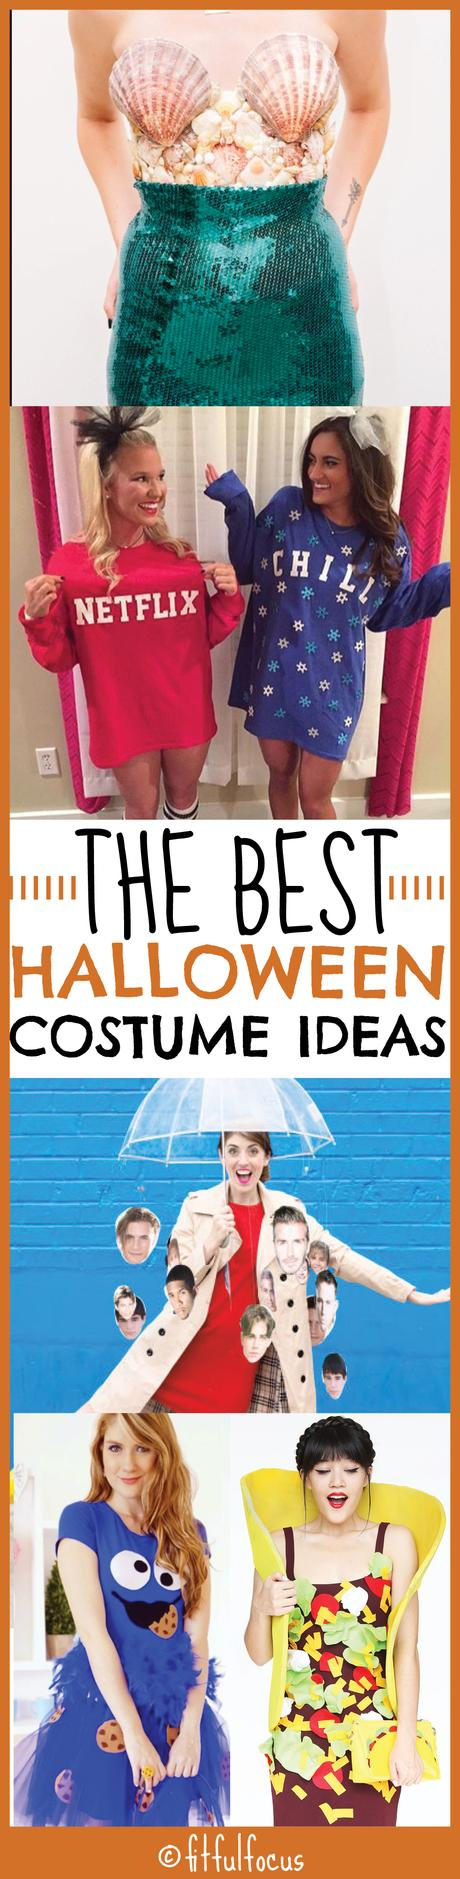 The Best Halloween Costume Ideas